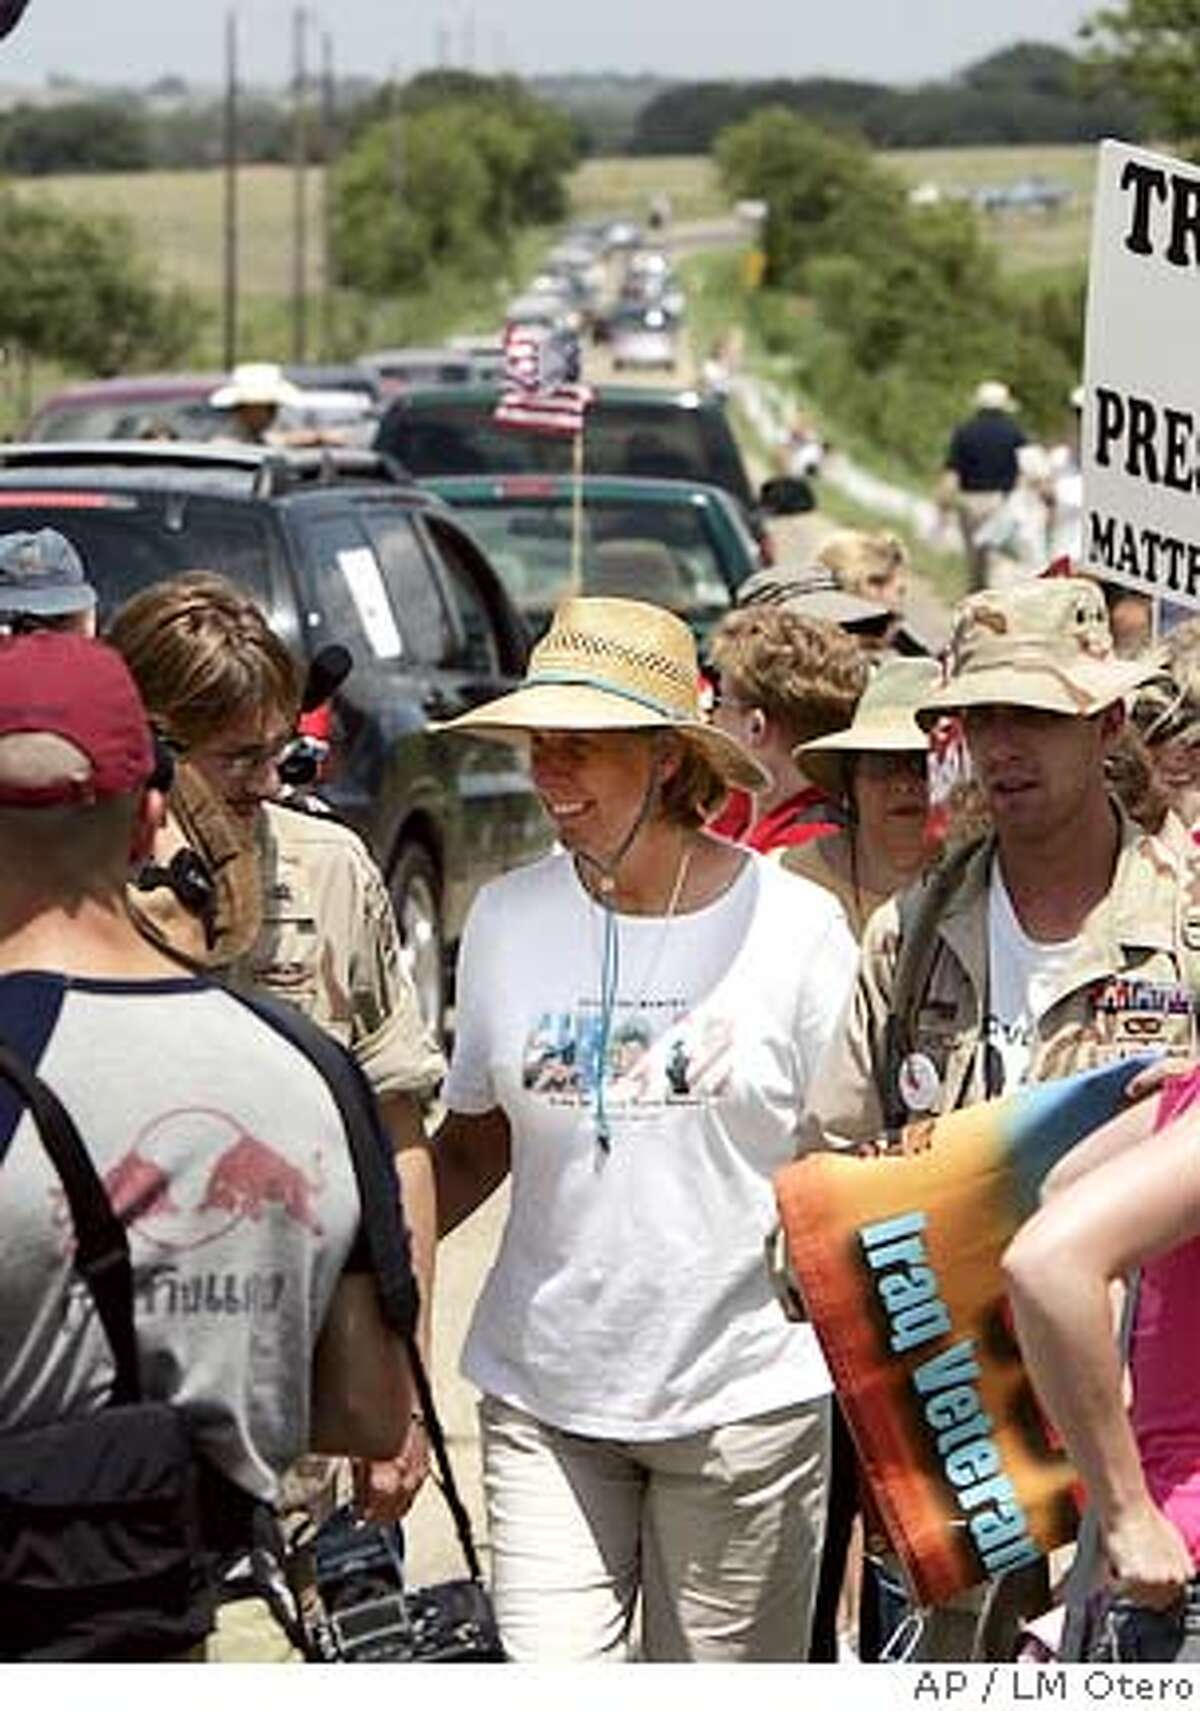 Cindy Sheehan, center, walks with supporter as dozens of cars drive on the road leading to President Bush's ranch near Crawford, Texas, Saturday, Aug. 13, 2005. A grieving mother's anti-war protest entered its second week, gaining momentum and spurring counter rallies, as hundreds of people with conflicting opinions about the war in Iraq descended Saturday on a road leading to the Western White House. (AP Photo/LM Otero)